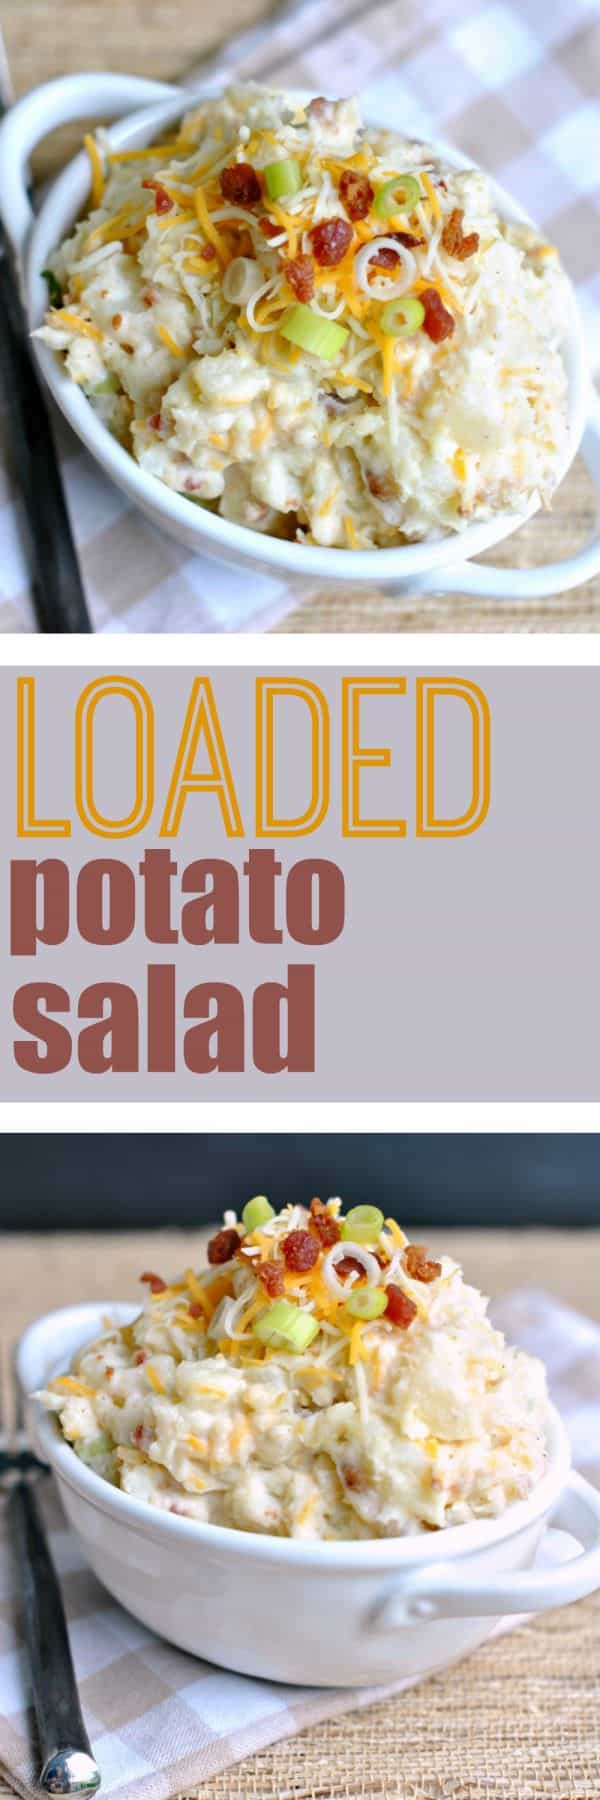 This Loaded Potato Salad is sure to be a crowd pleaser. I can tell you it definitely was a hit with my family!